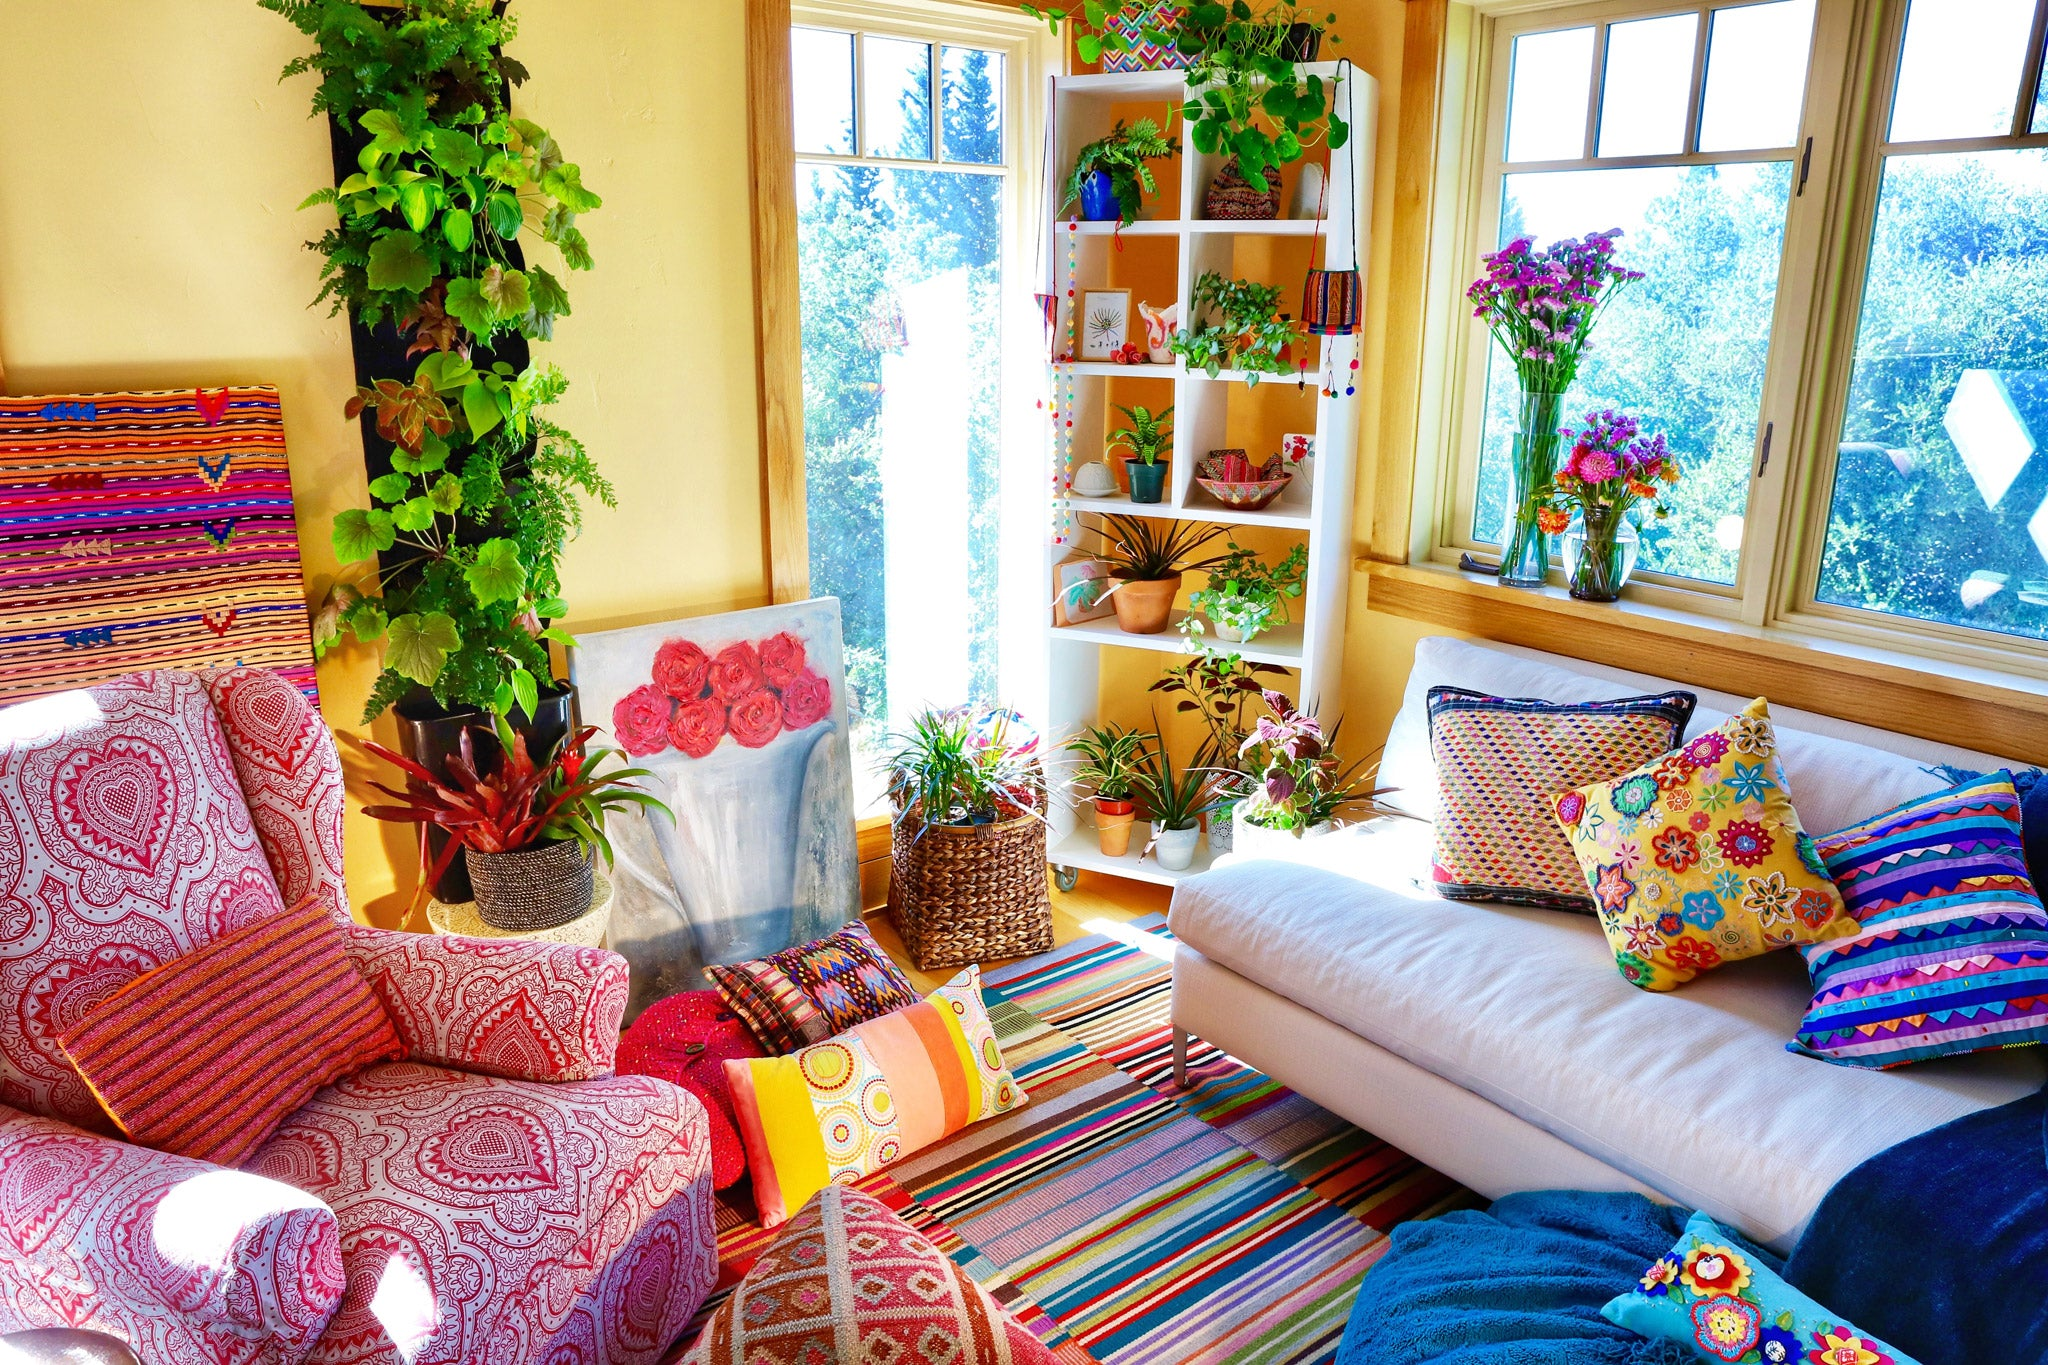 Top 6 Ways to Decorate Like a Boho Pro – Planted Places